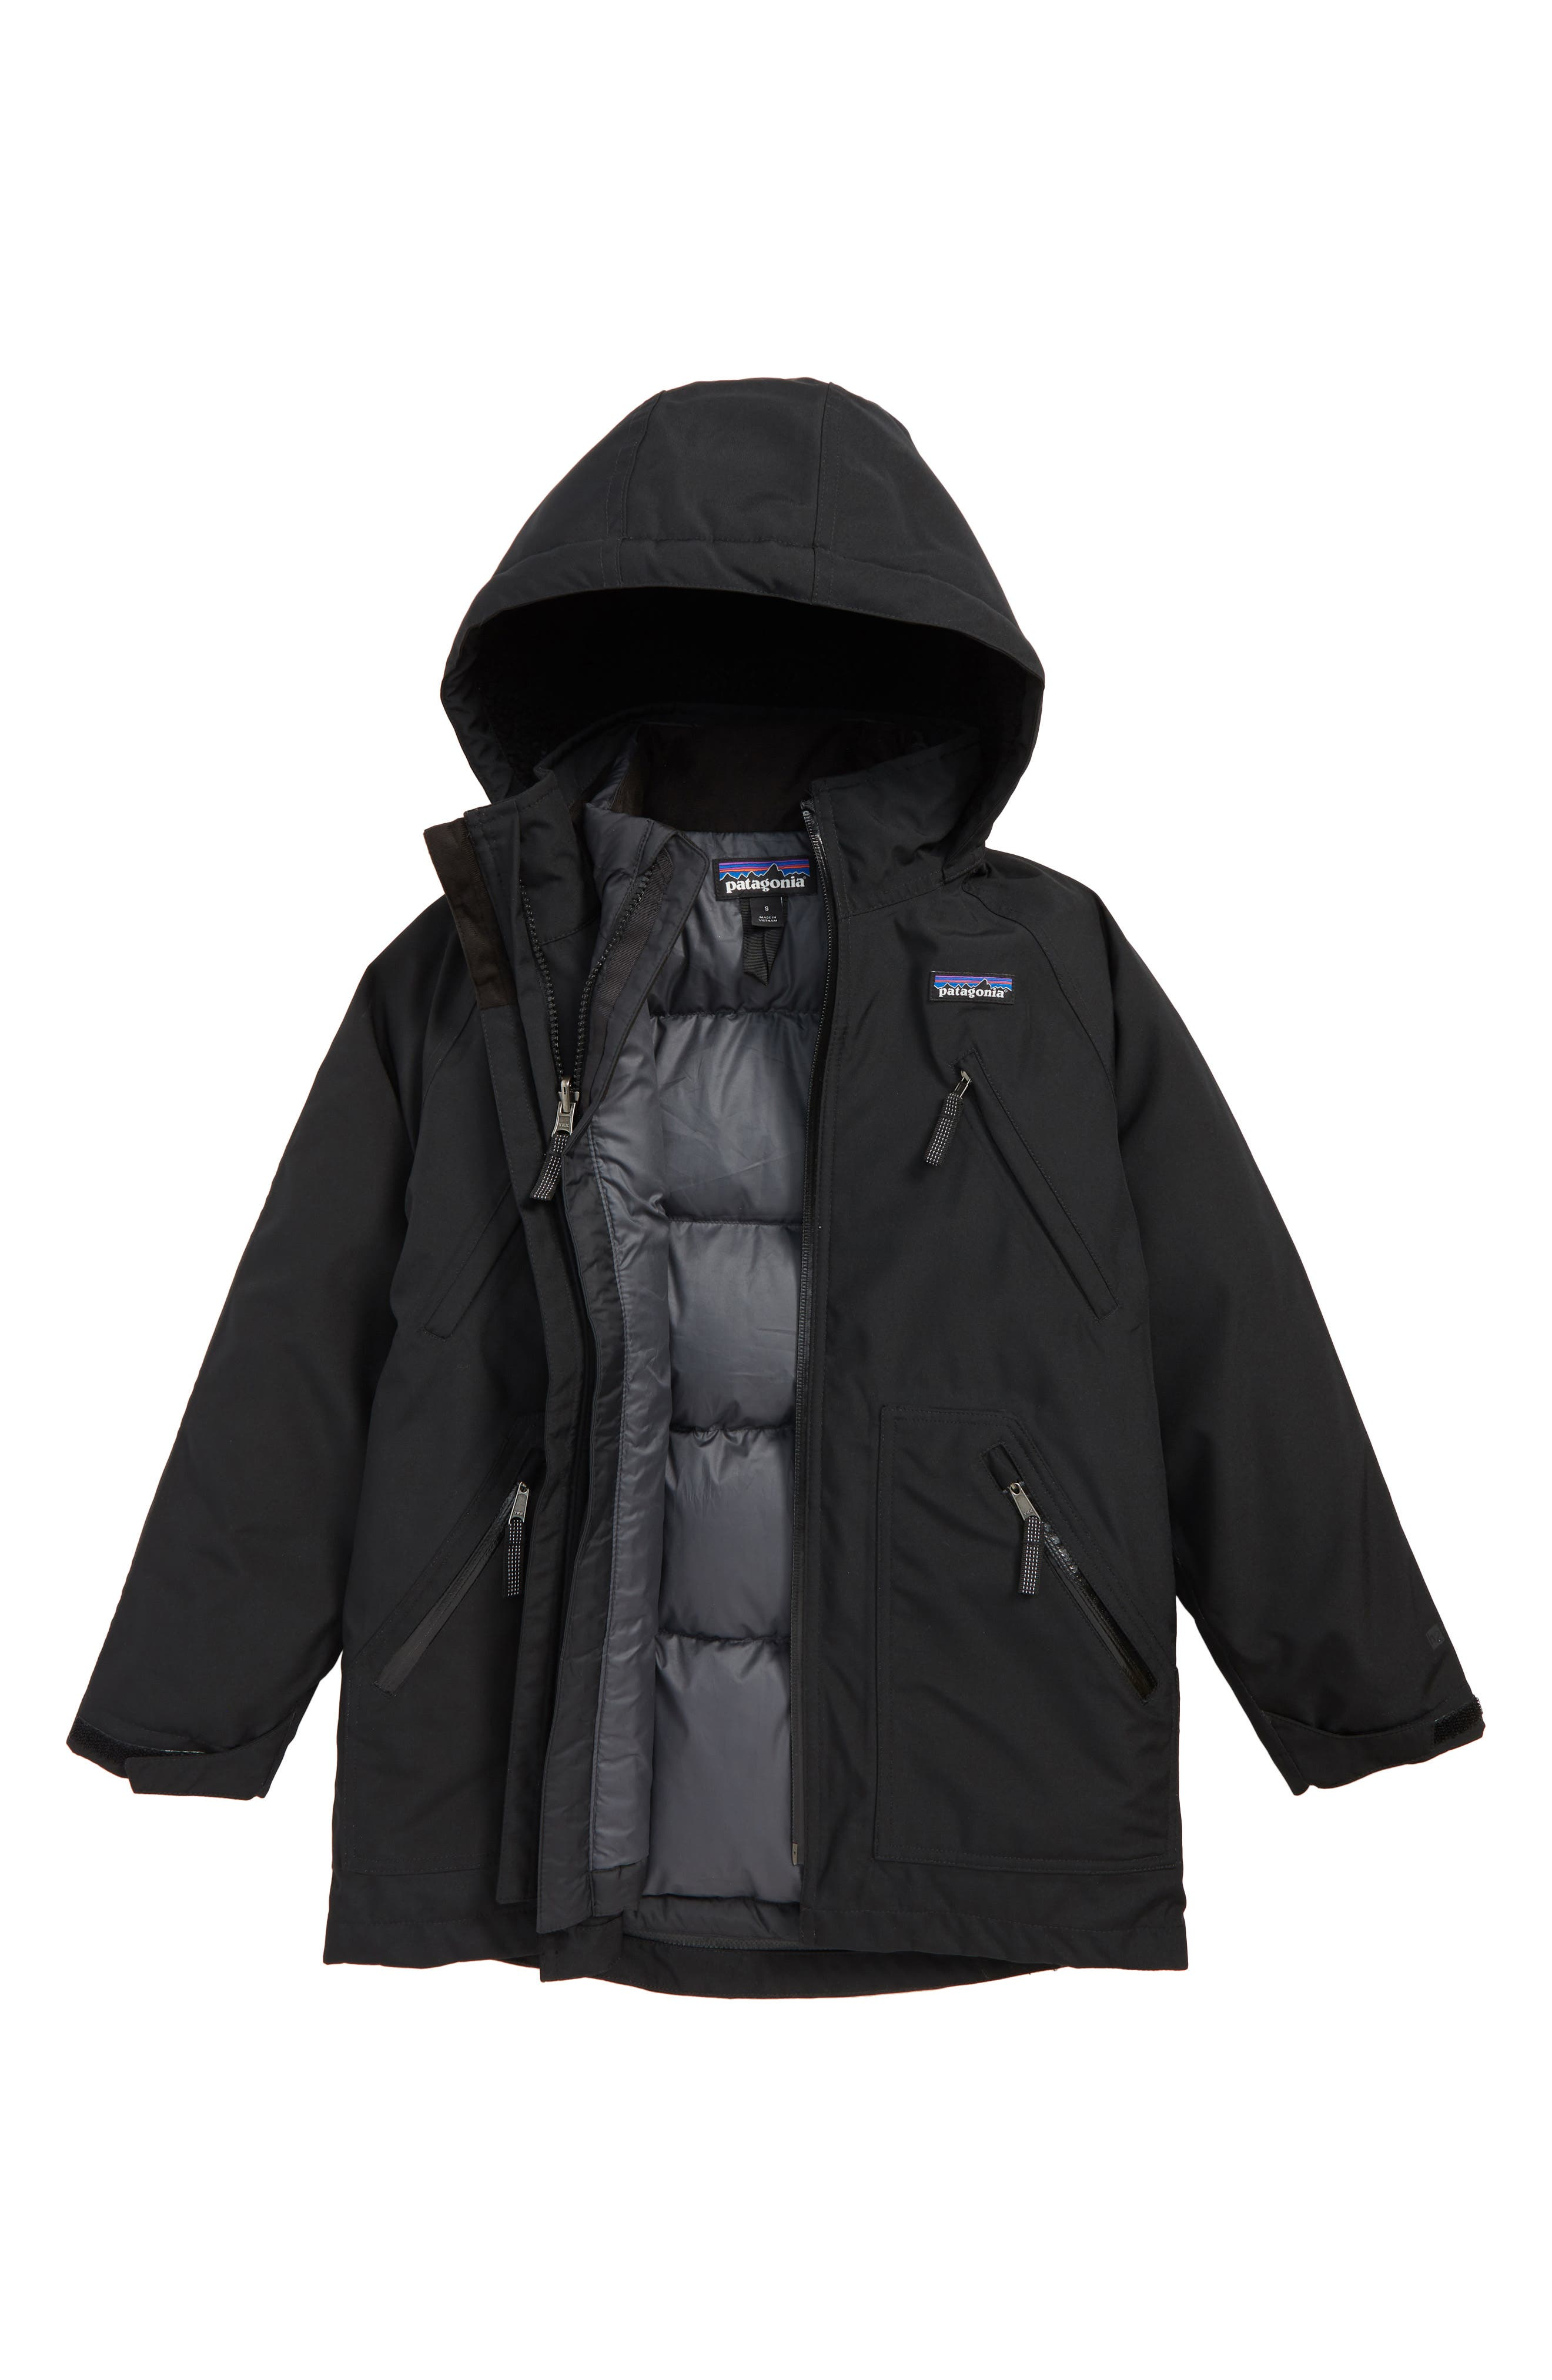 Tres Water Repellent 3-in-1 Recycled Down Parka,                             Main thumbnail 1, color,                             001